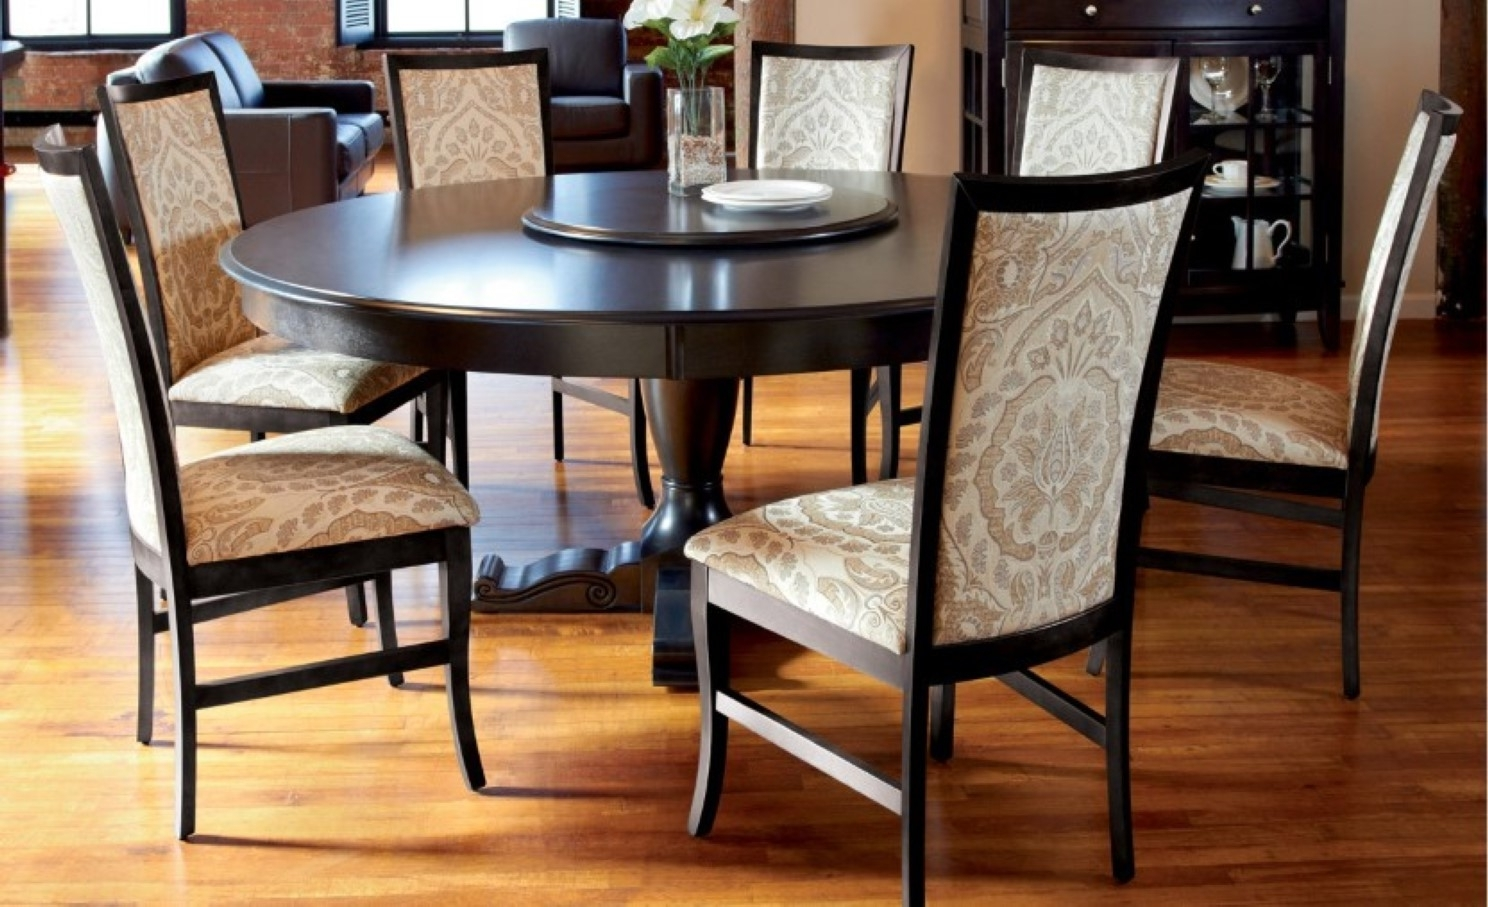 Homesfeed within Most Up-to-Date Dining Tables For Six